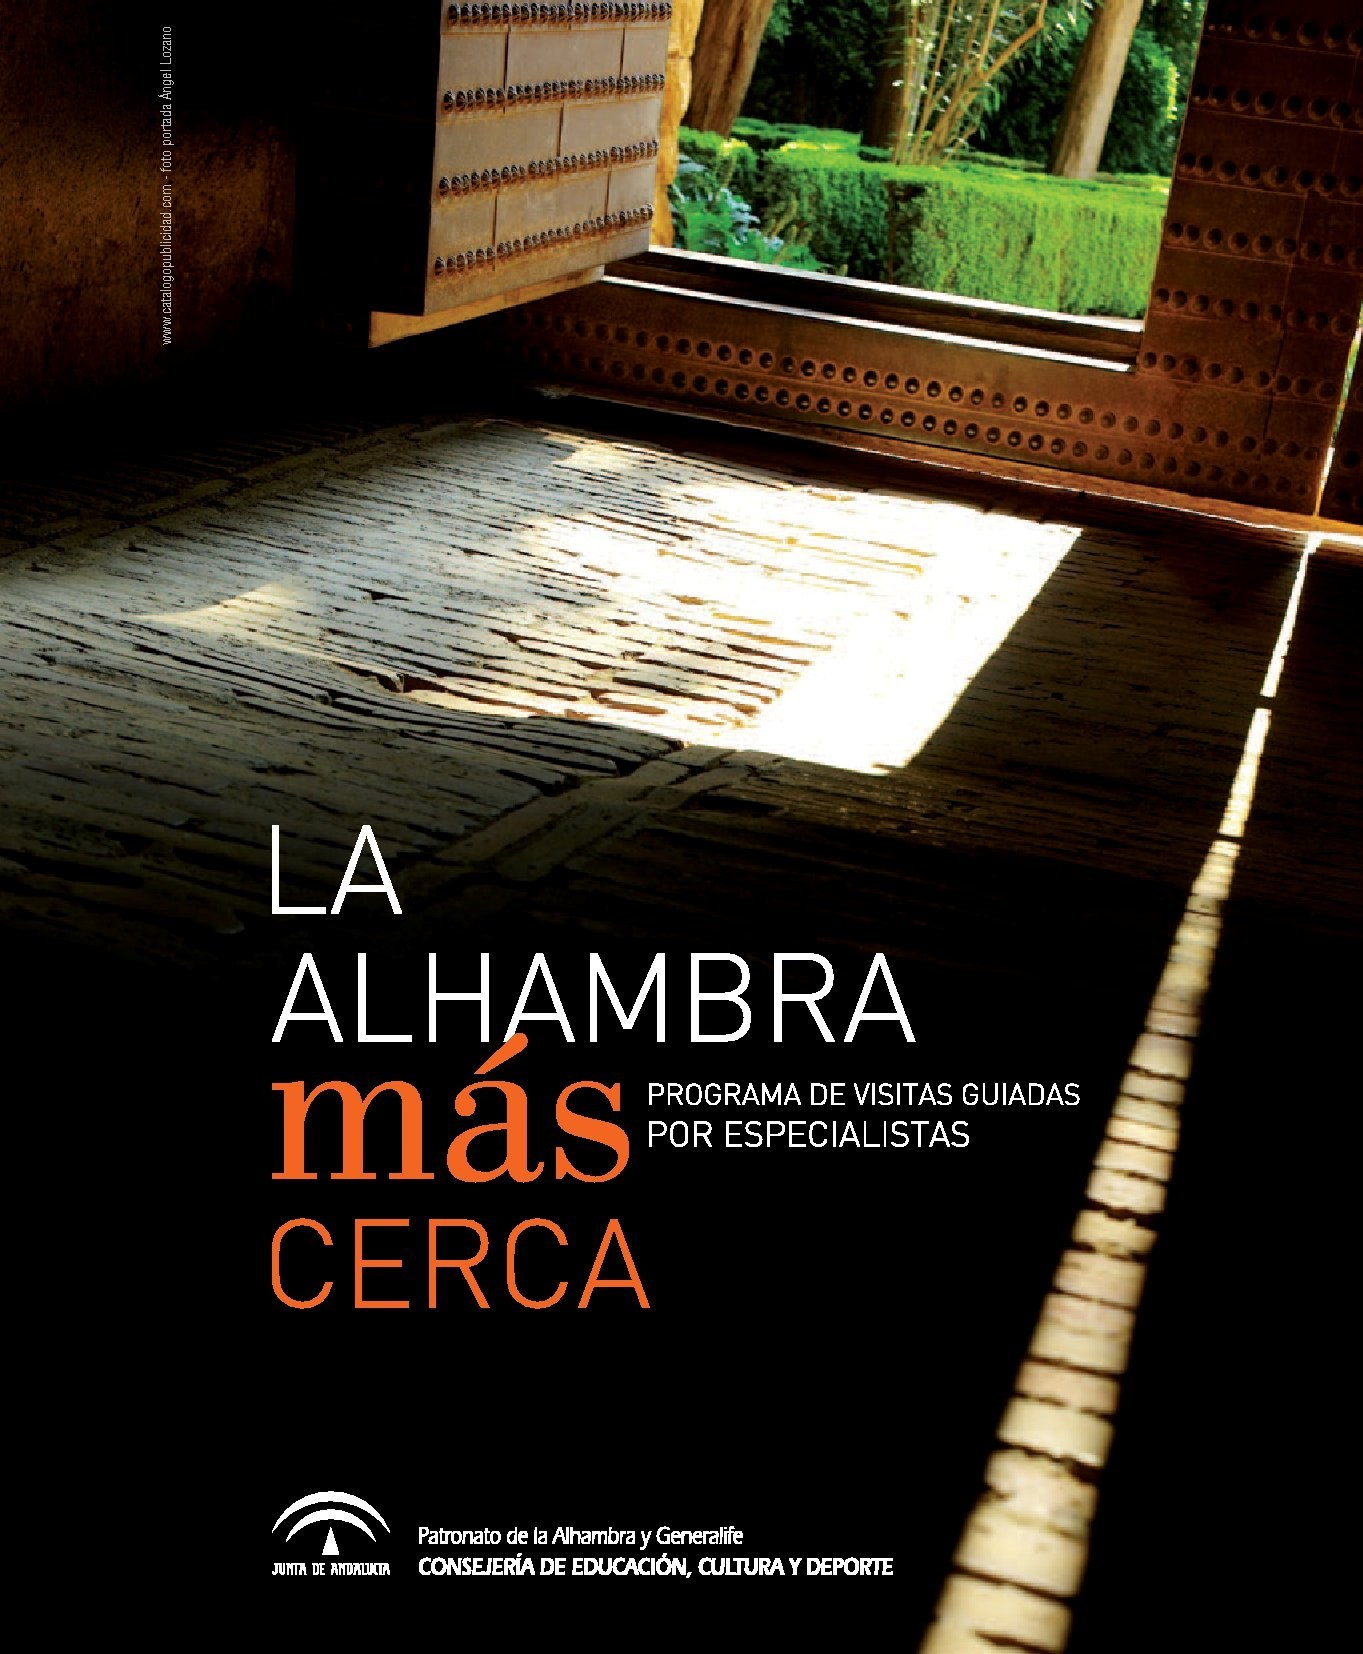 The Alhambra, as seen through the eyes of specialist